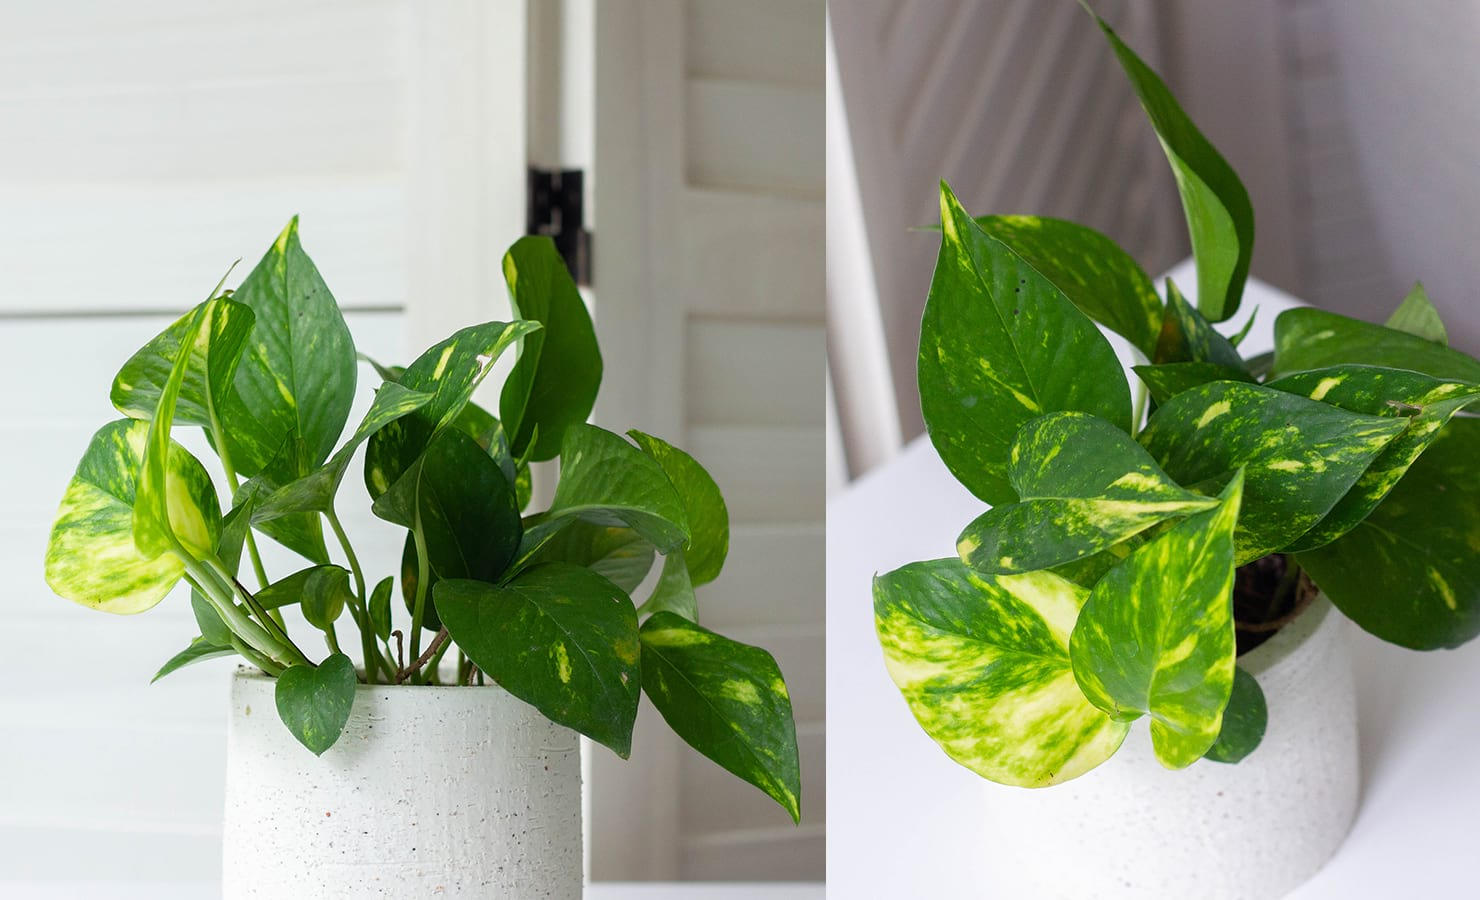 bloomthis-qixi-festival-gift-guide-2021-11-pothos-plant